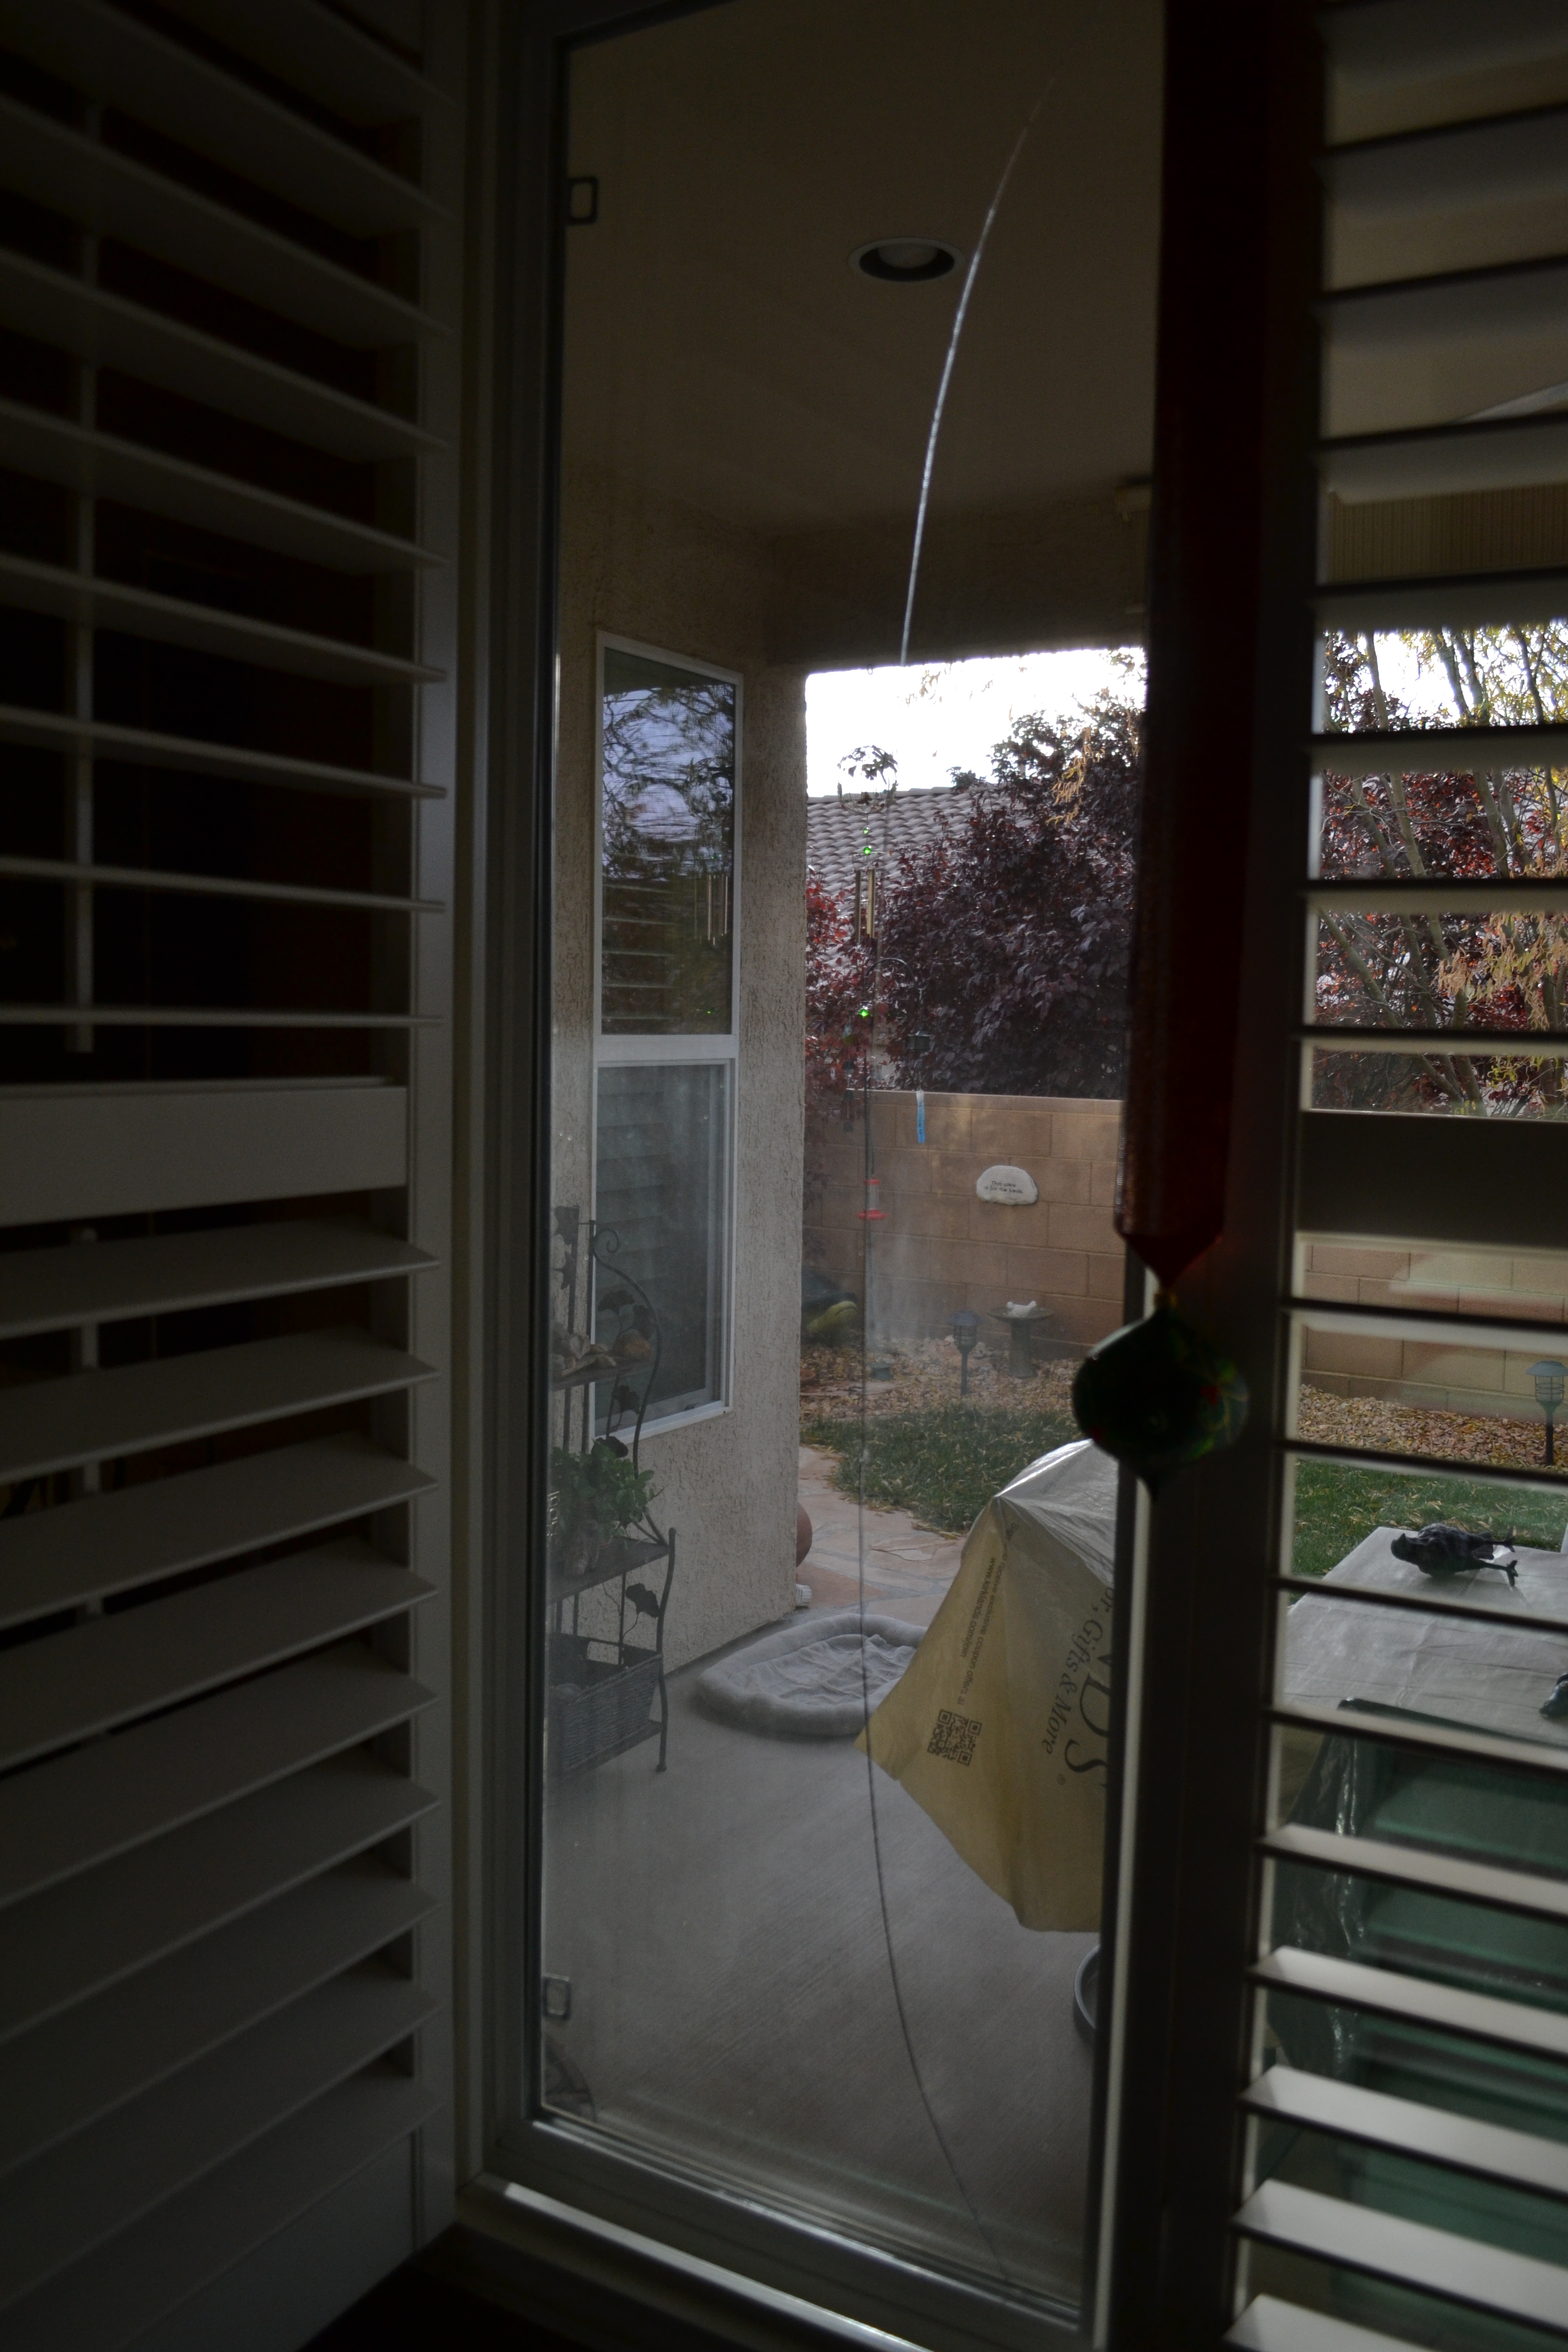 Astounding Sunriver Residents Report Cracked Windows After Air Force Download Free Architecture Designs Itiscsunscenecom